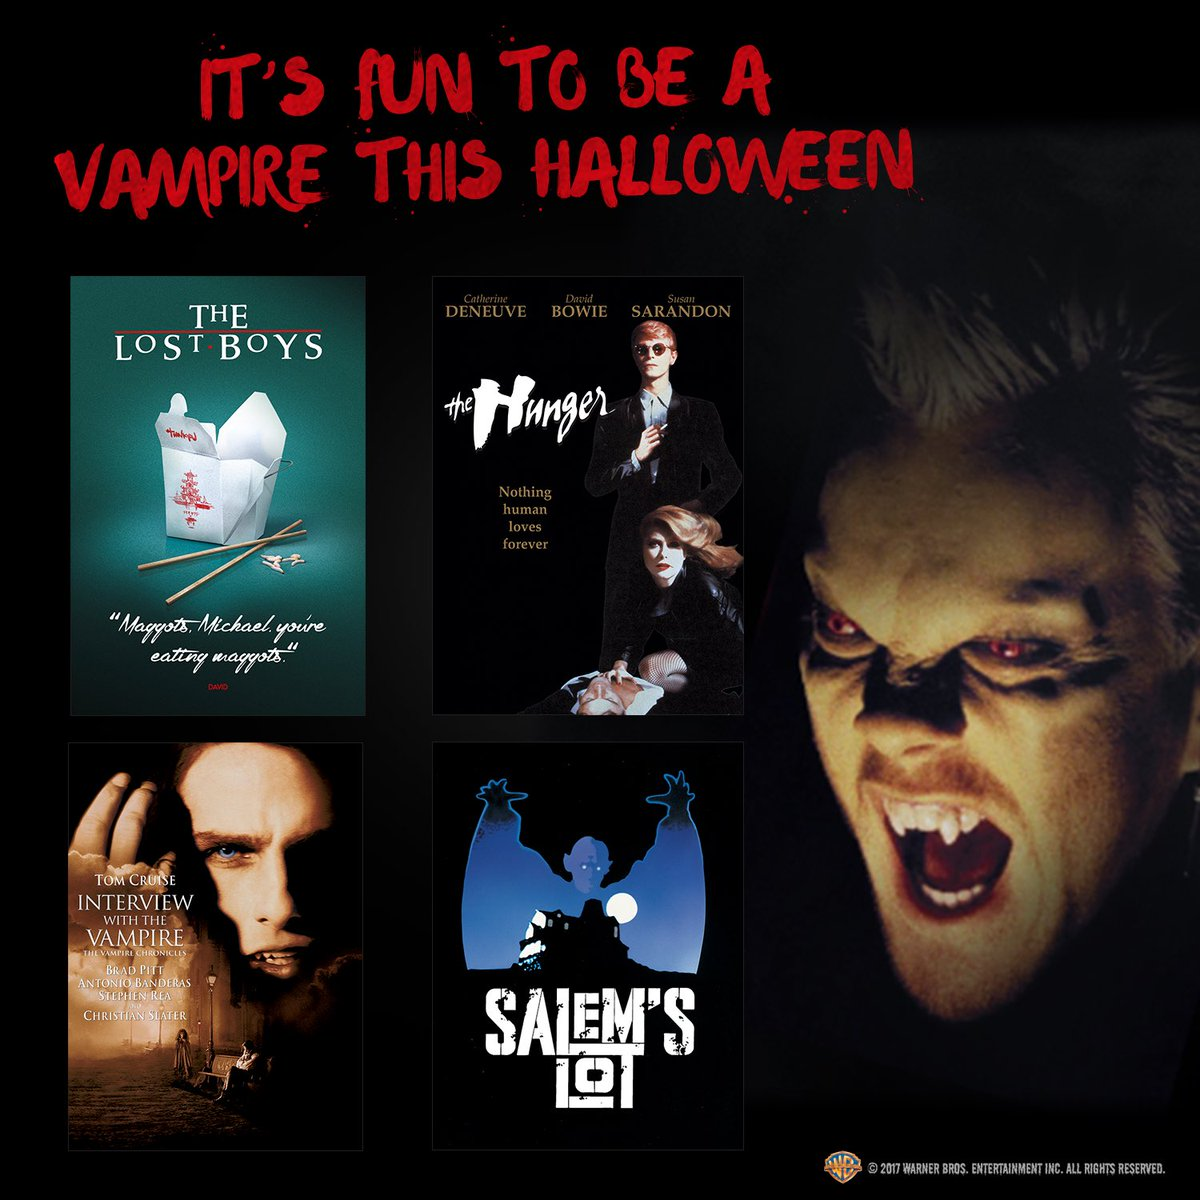 With Halloween not too far away we have this horror bundle to give away. Just follow &amp; RT to enter our #competition. #WBHalloween #Horror <br>http://pic.twitter.com/dZt7LOGPKO